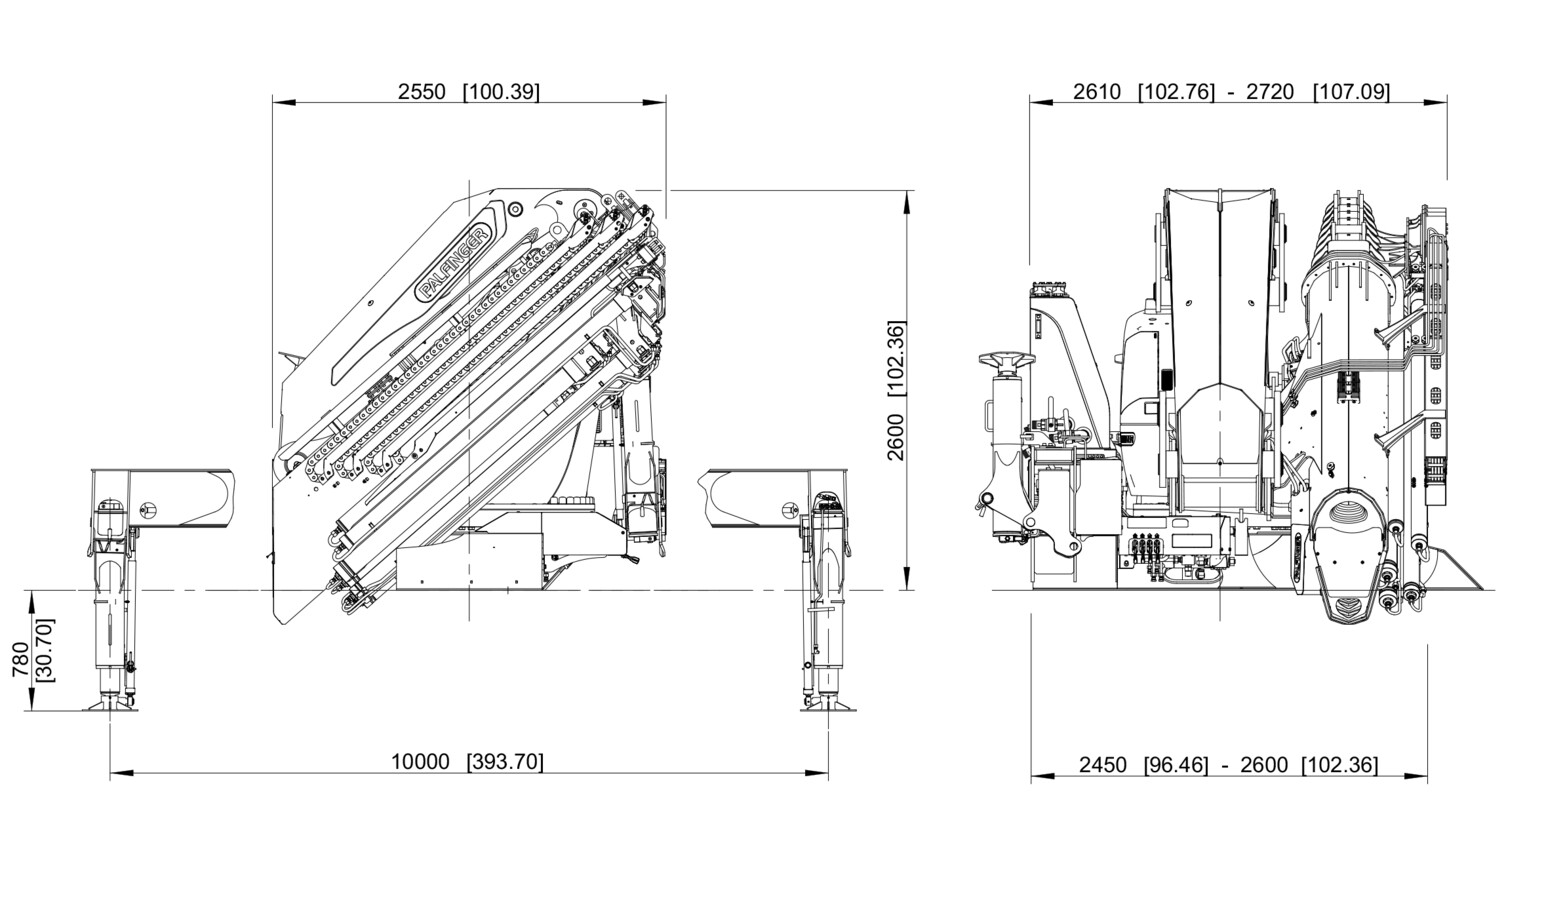 peugeot 306 heater fan wiring diagram with Peugeot 306 Window Wiring Diagram on 1998 Dodge Caravan Starter Location furthermore Peugeot 406 2003 Workshop Manual Diagram moreover Wire Diagram For Sw  Cooler likewise Peugeot 306 Window Wiring Diagram in addition PEUGEOT Car Radio Wiring Connector.